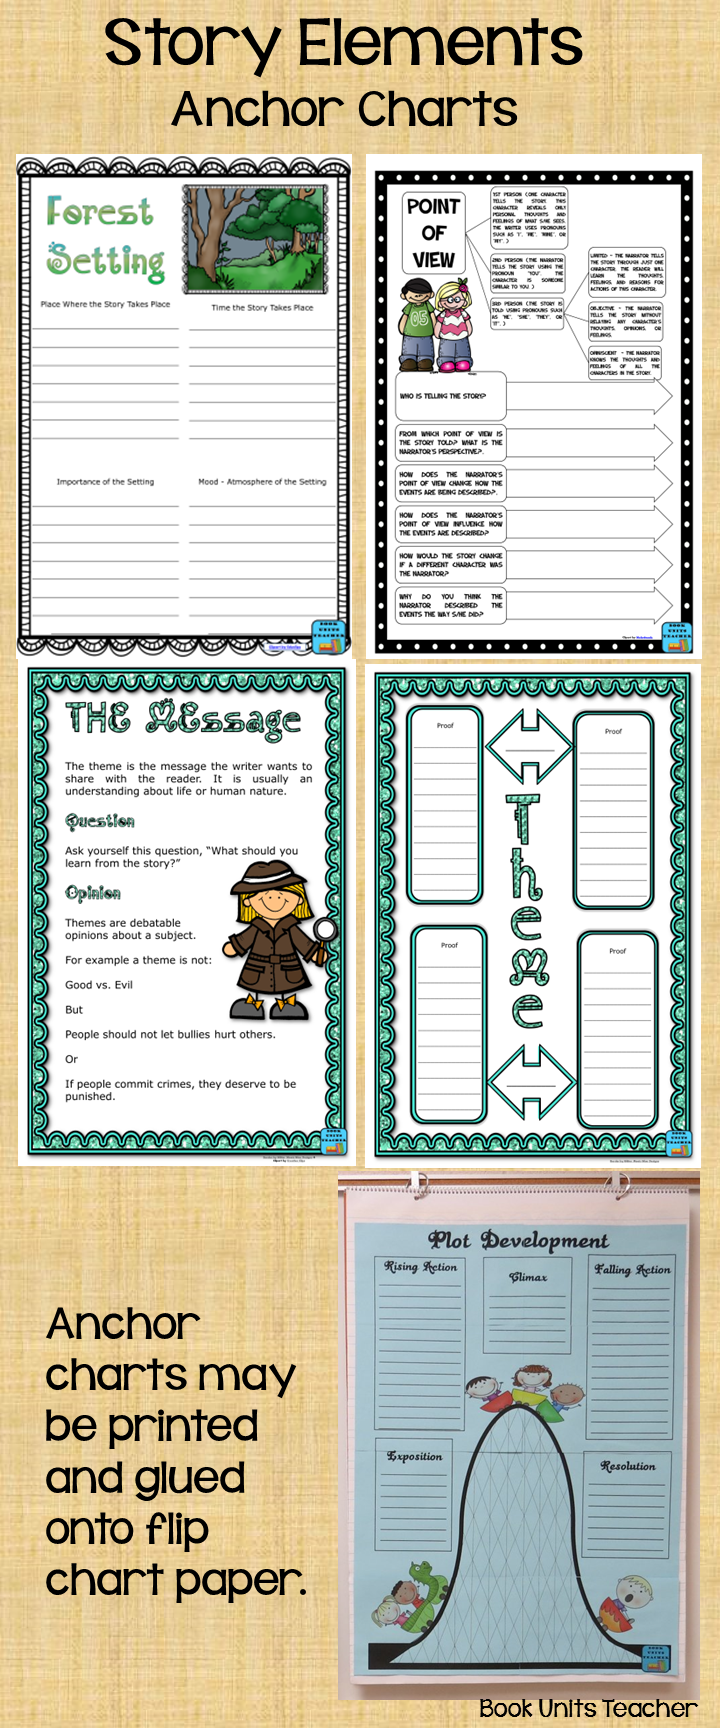 These printables are large enough to use as anchor charts. Print out using the poster option. Glue the pieces together, and they are ready for use.